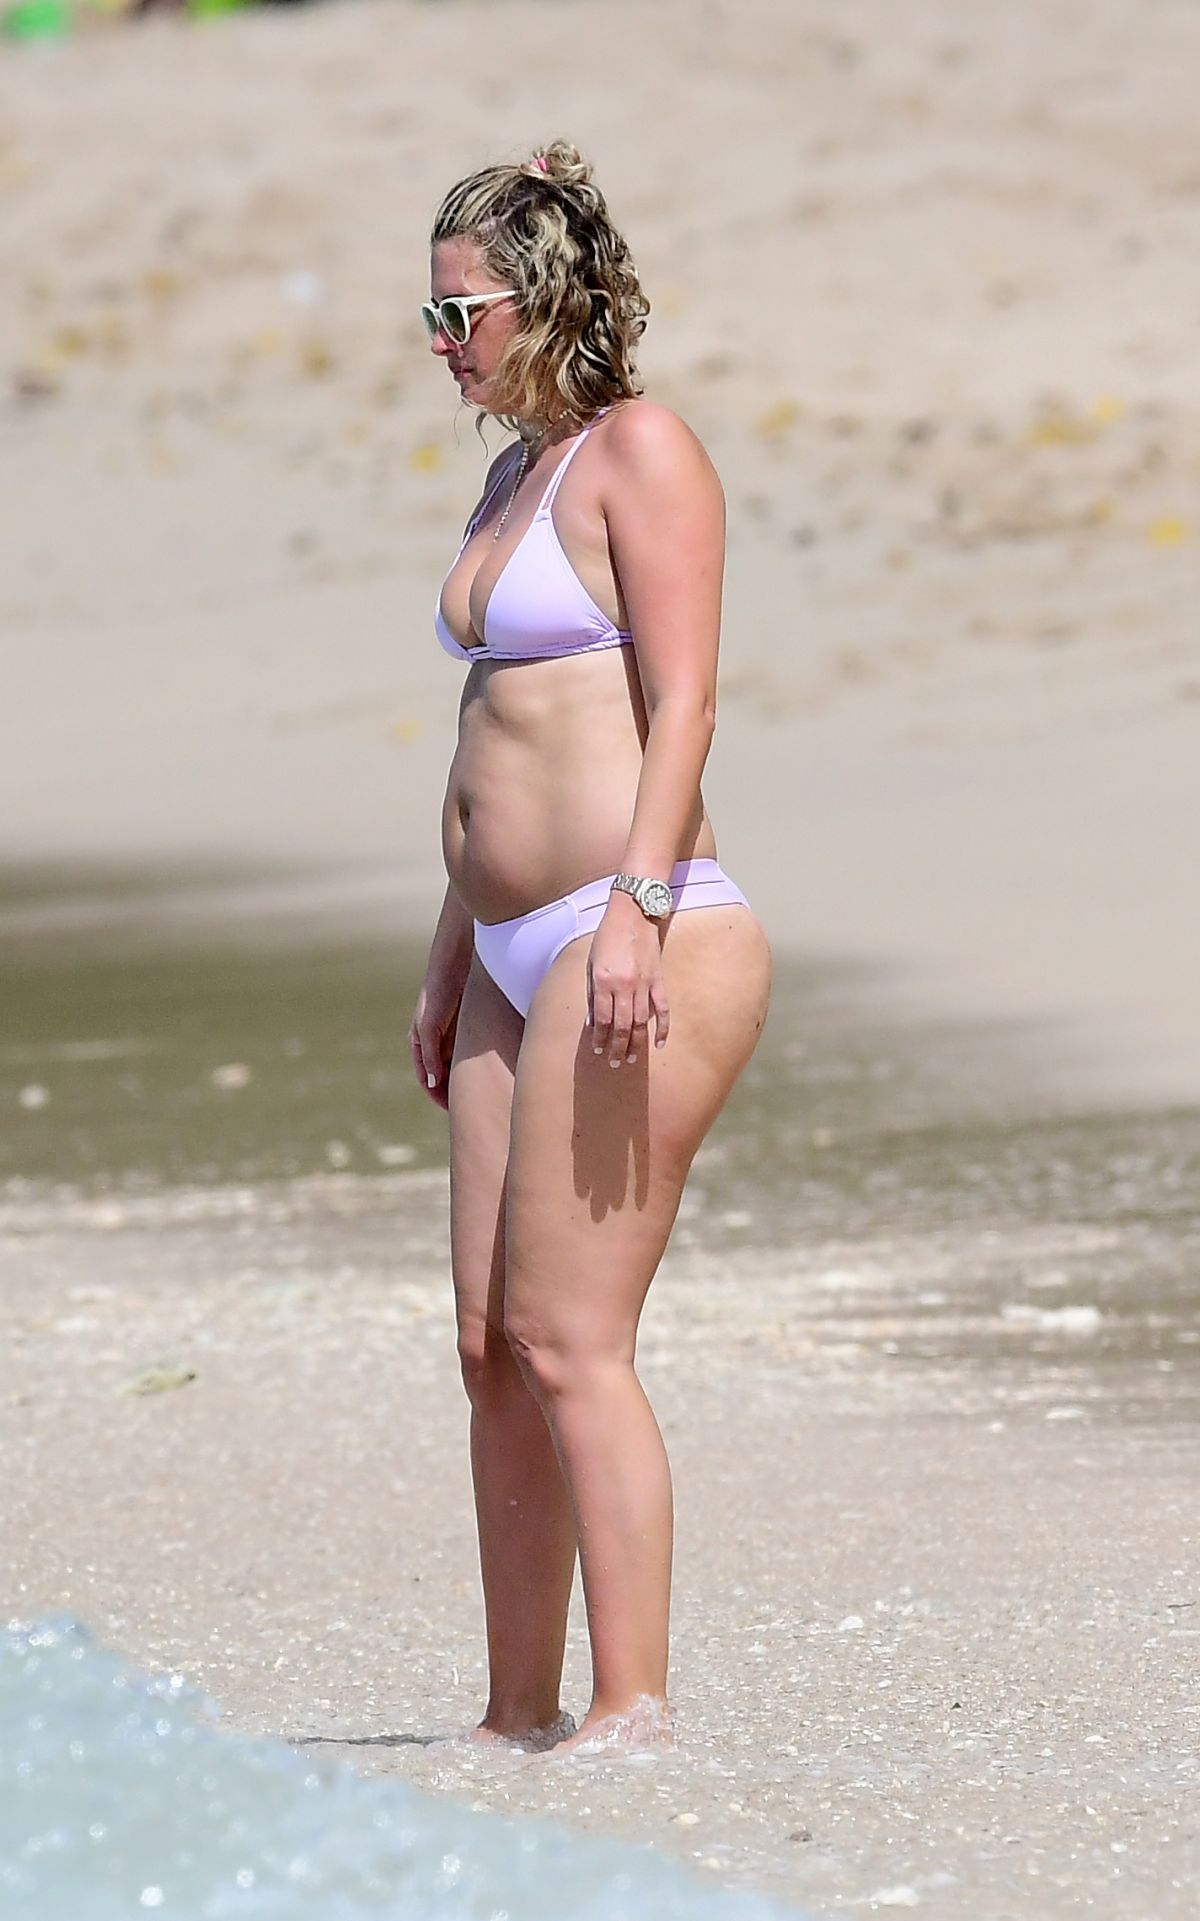 Mark Wahlberg and wife Rhea Durham show off beach bodies ...